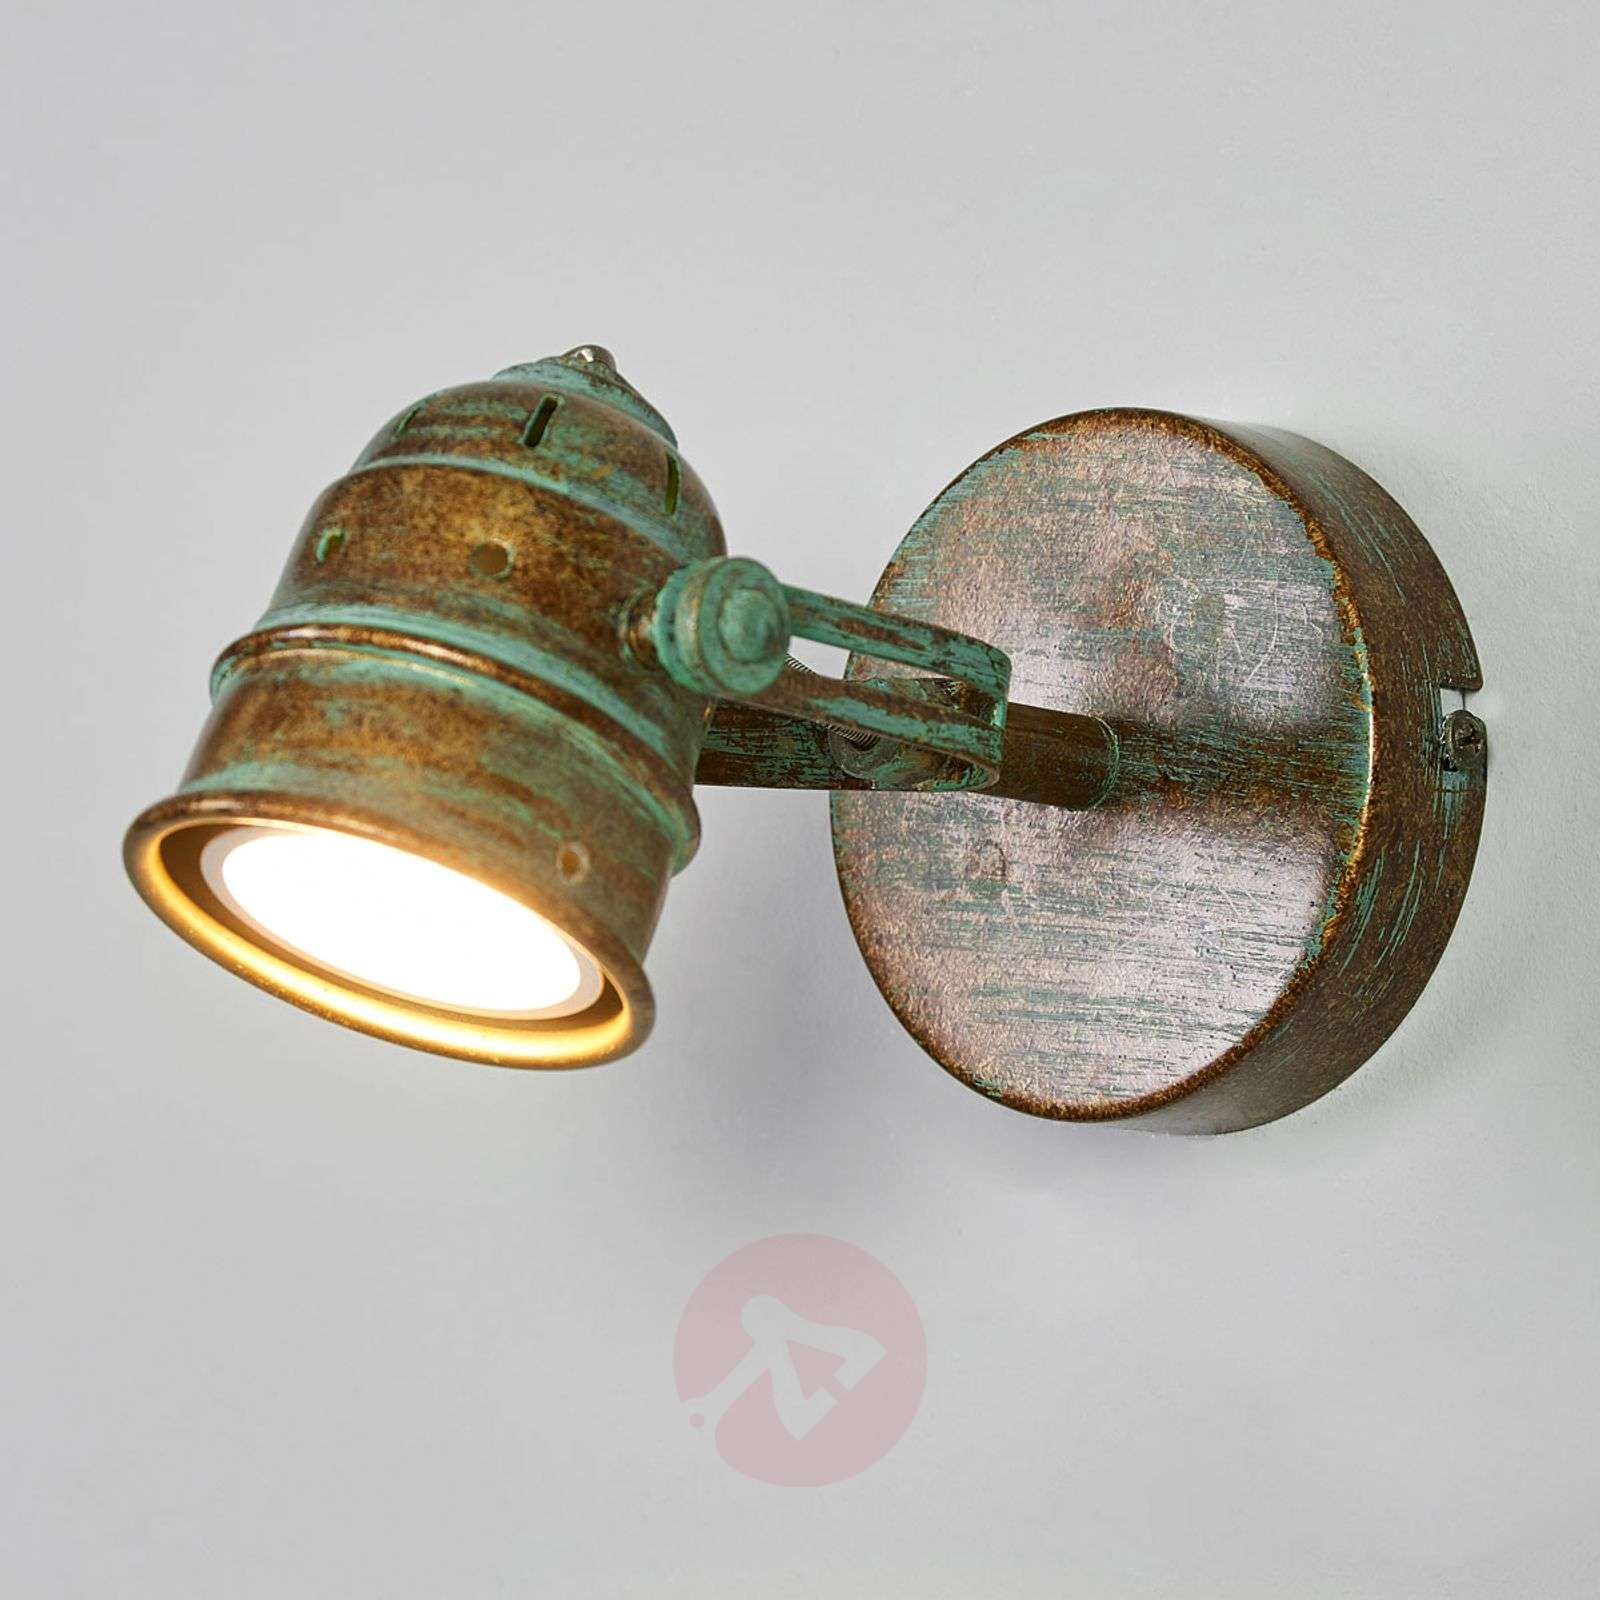 Lampade Rustiche In Rame : Acquista leonor spot led in color rame ossidato lampade.it